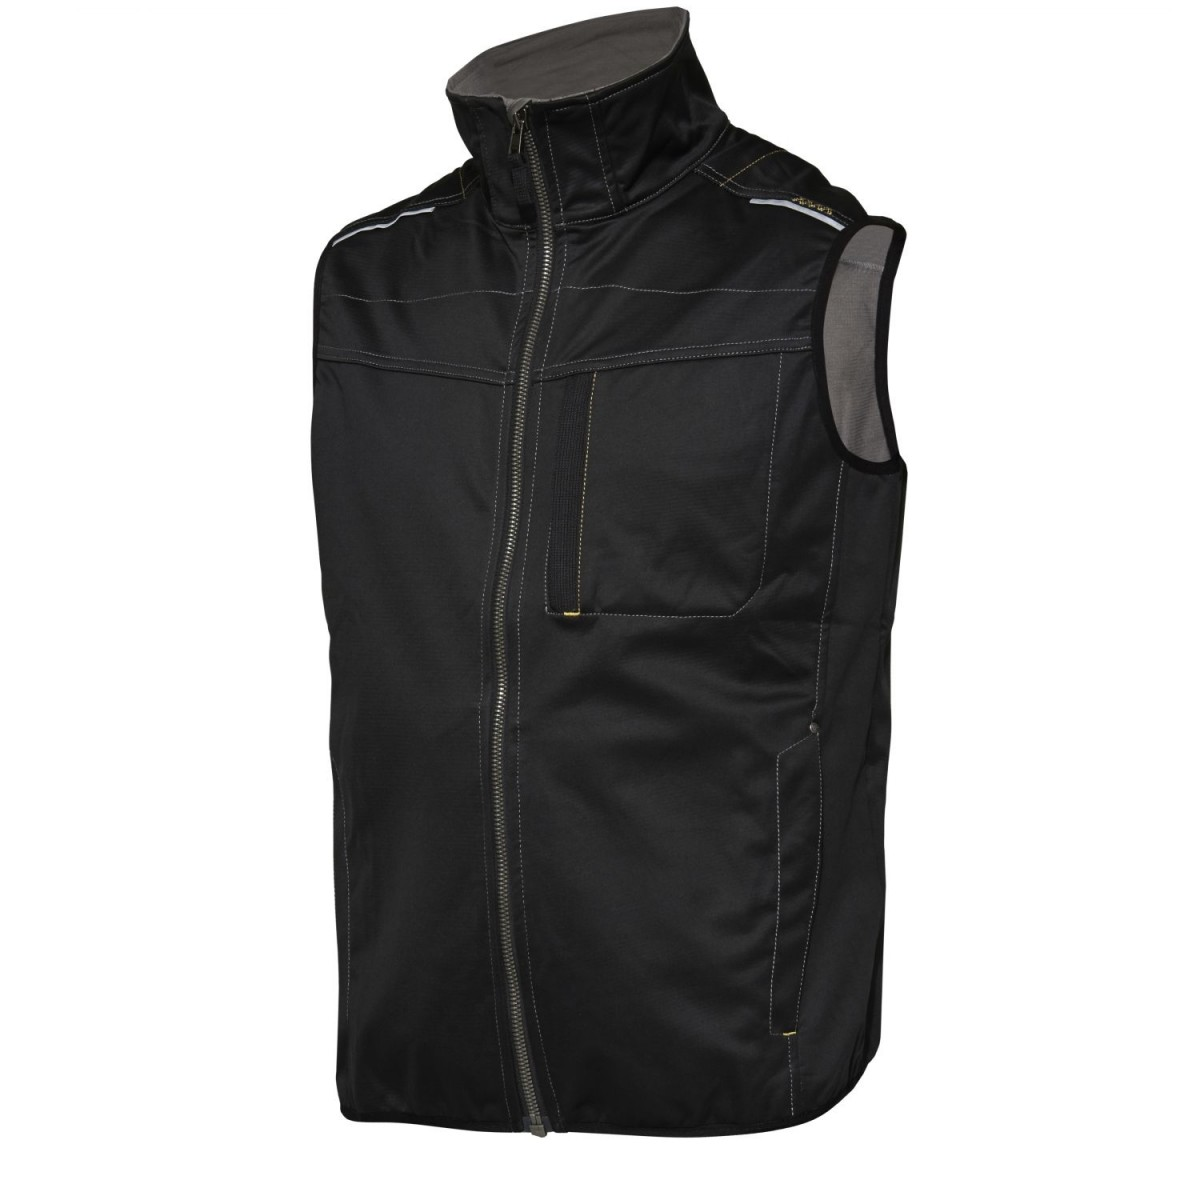 F. Engel Tech Zone Softshell Vest-35